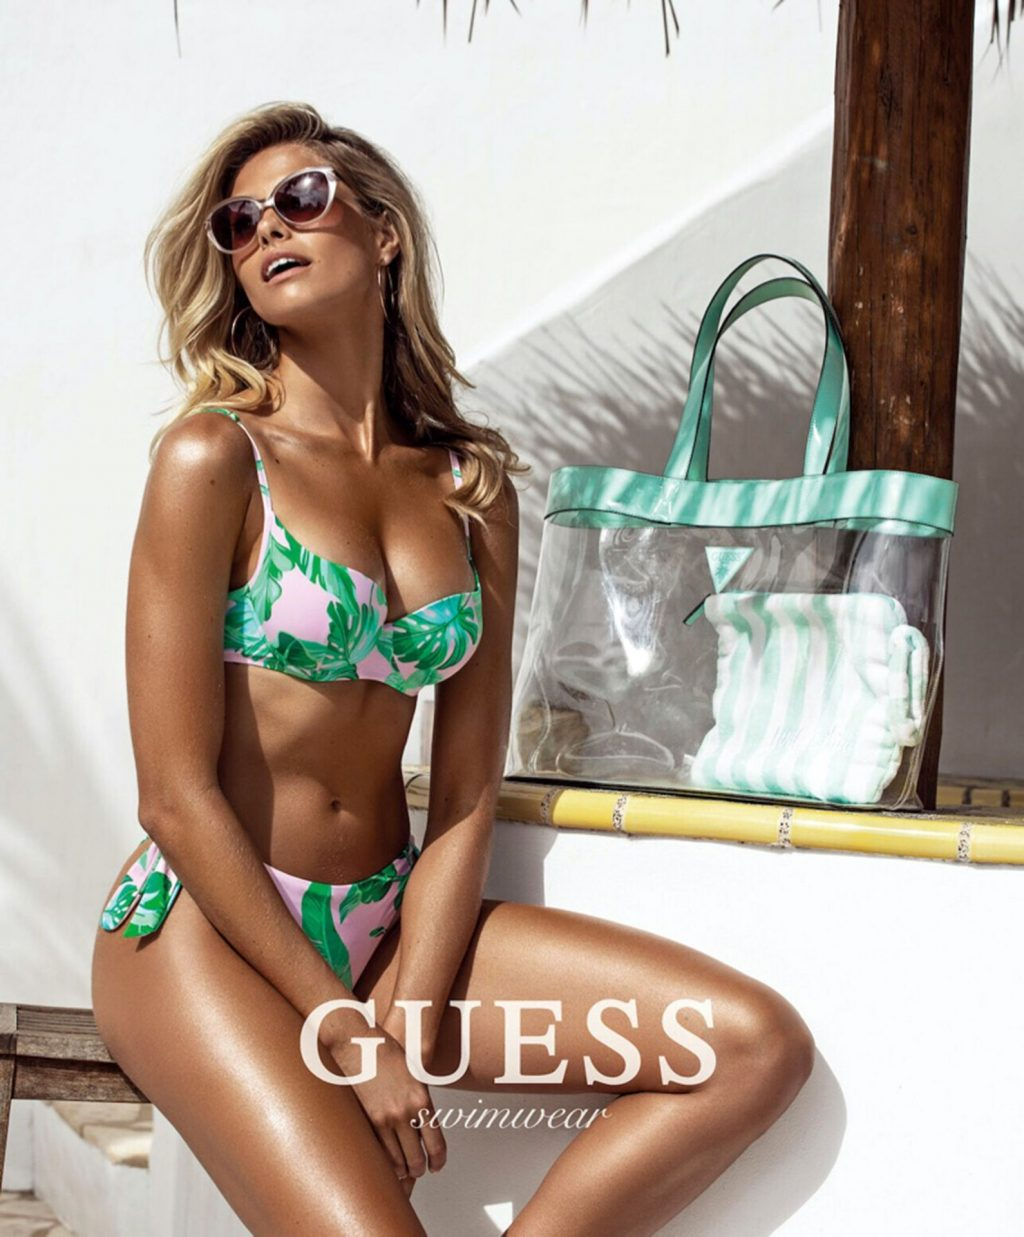 Natalie Roser & Elizabeth Turner Pose for Guess Swimwear and Lingerie Campaign (11 Photos)